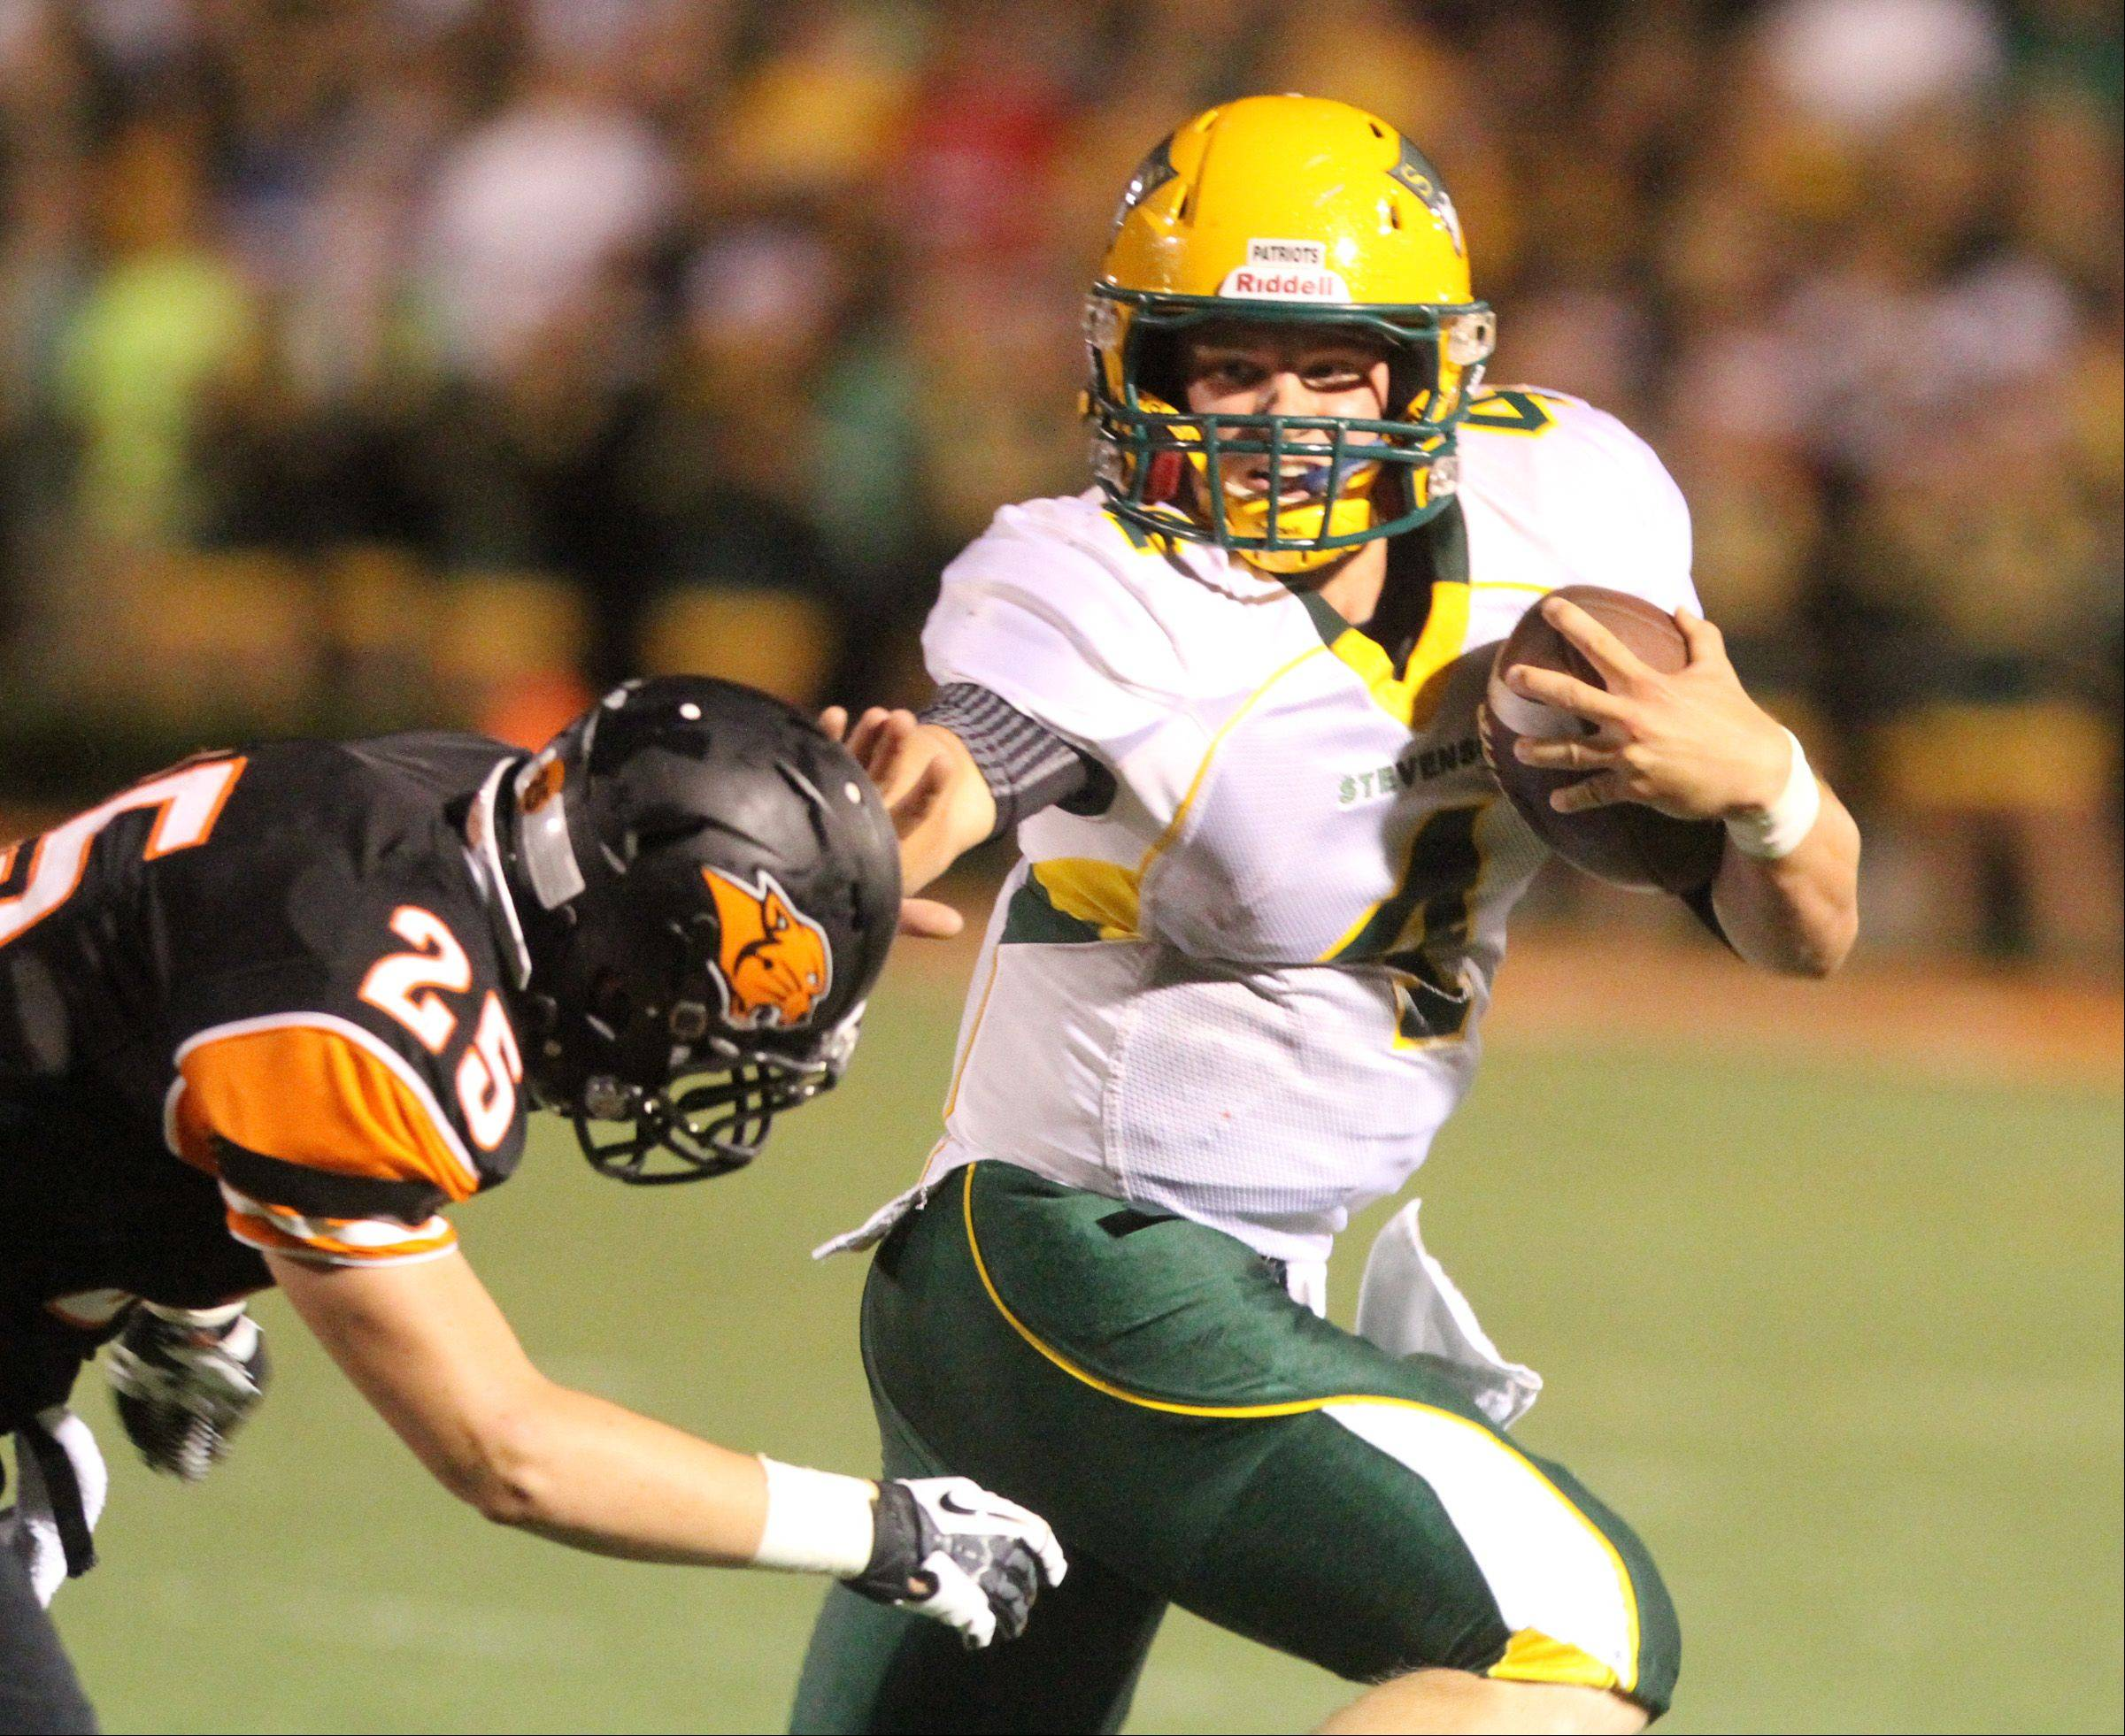 Stevenson wins one for Geppert